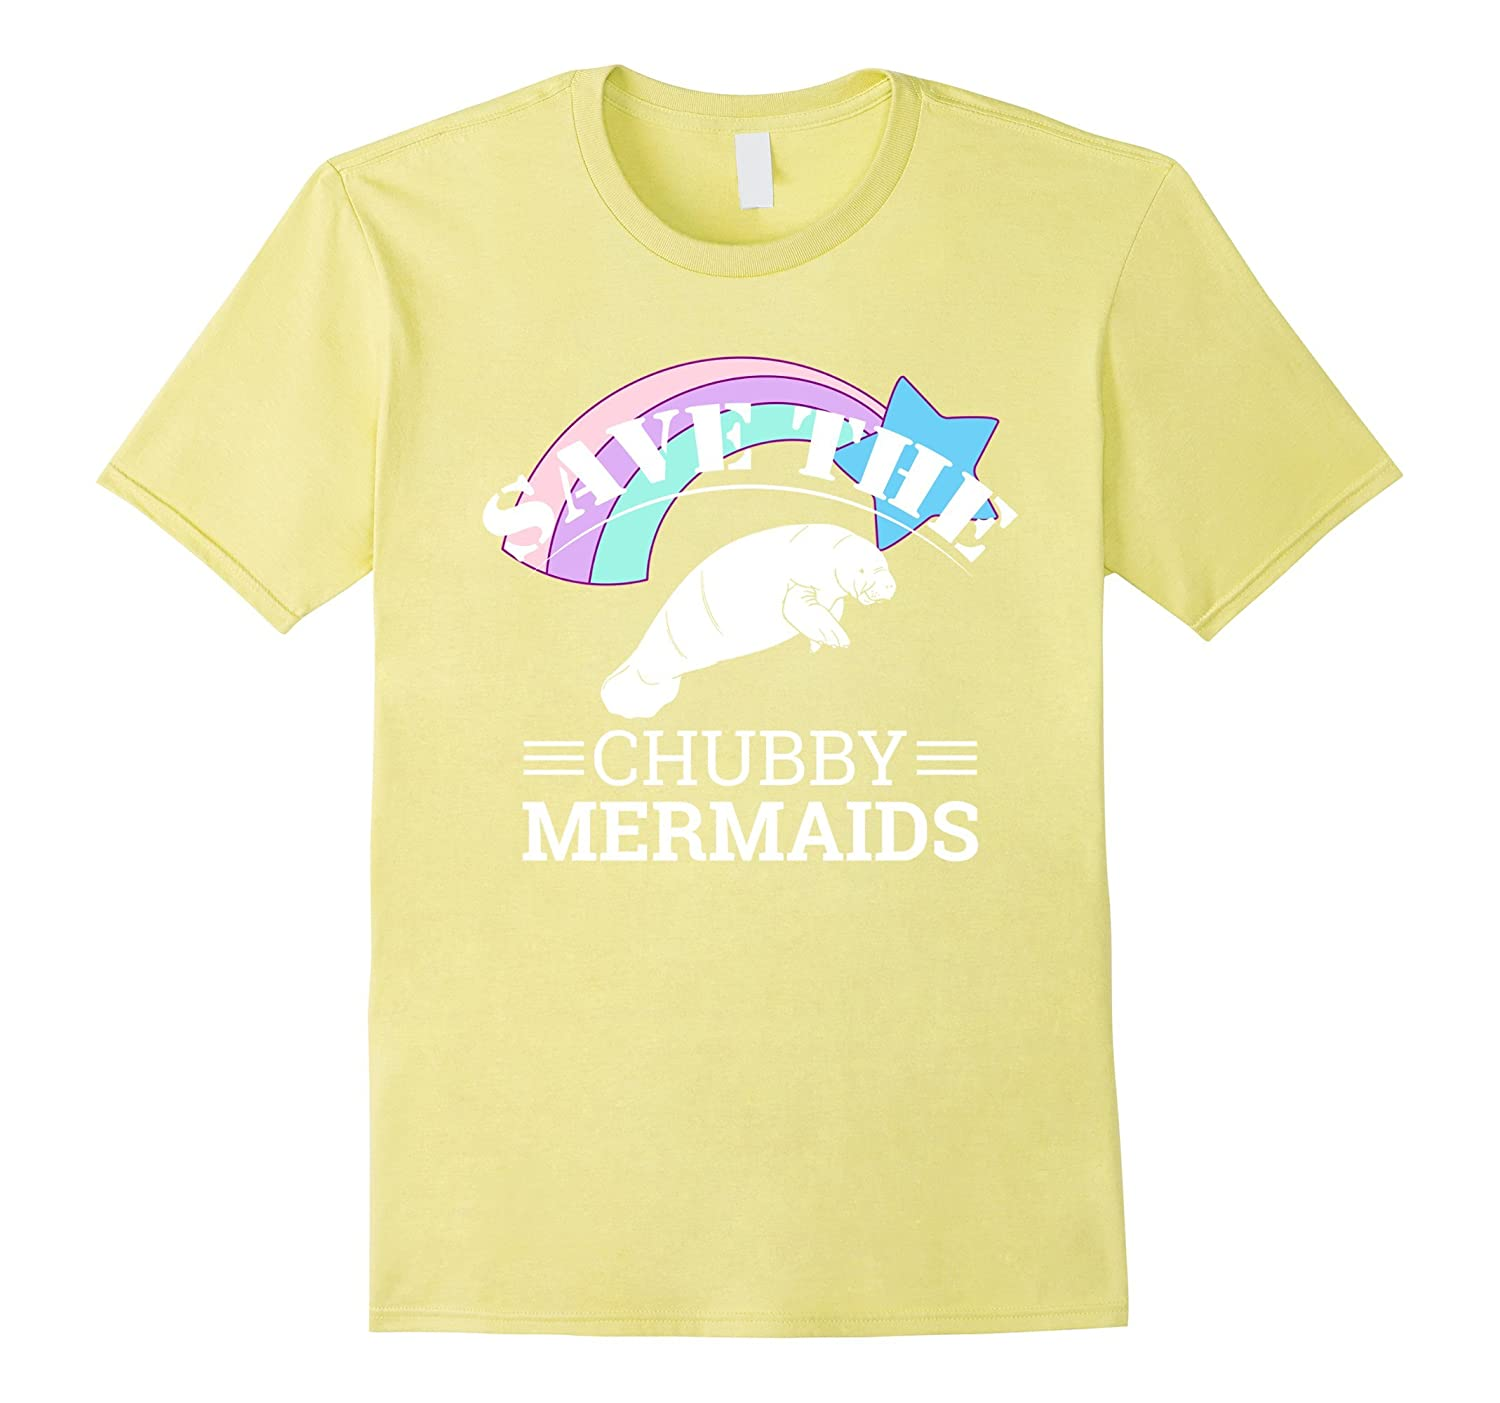 59c40b932 Save The Chubby Mermaids Manatees Apparel T-Shirt – Hntee.com